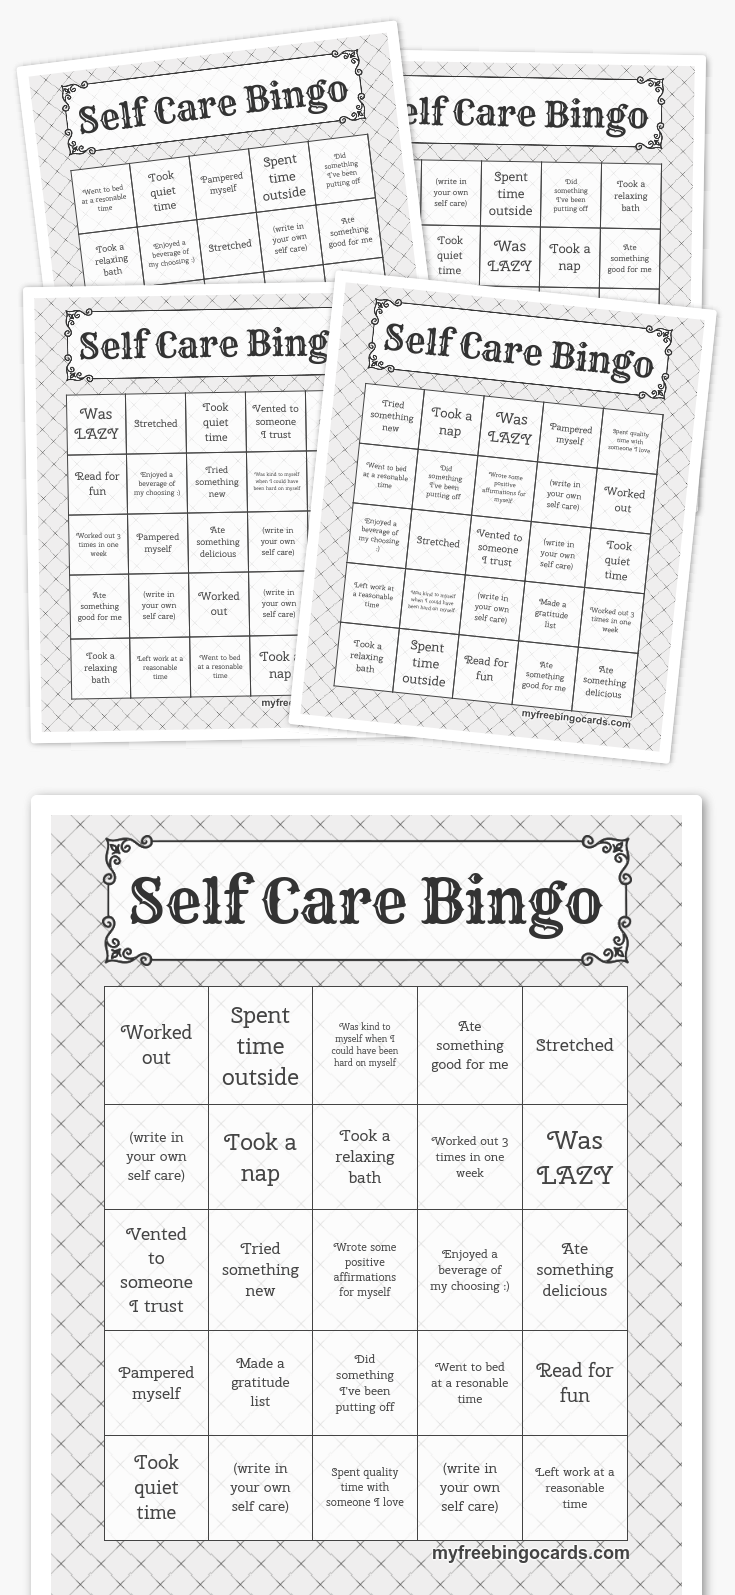 Self Care Bingo So excited to roll this out to my staff